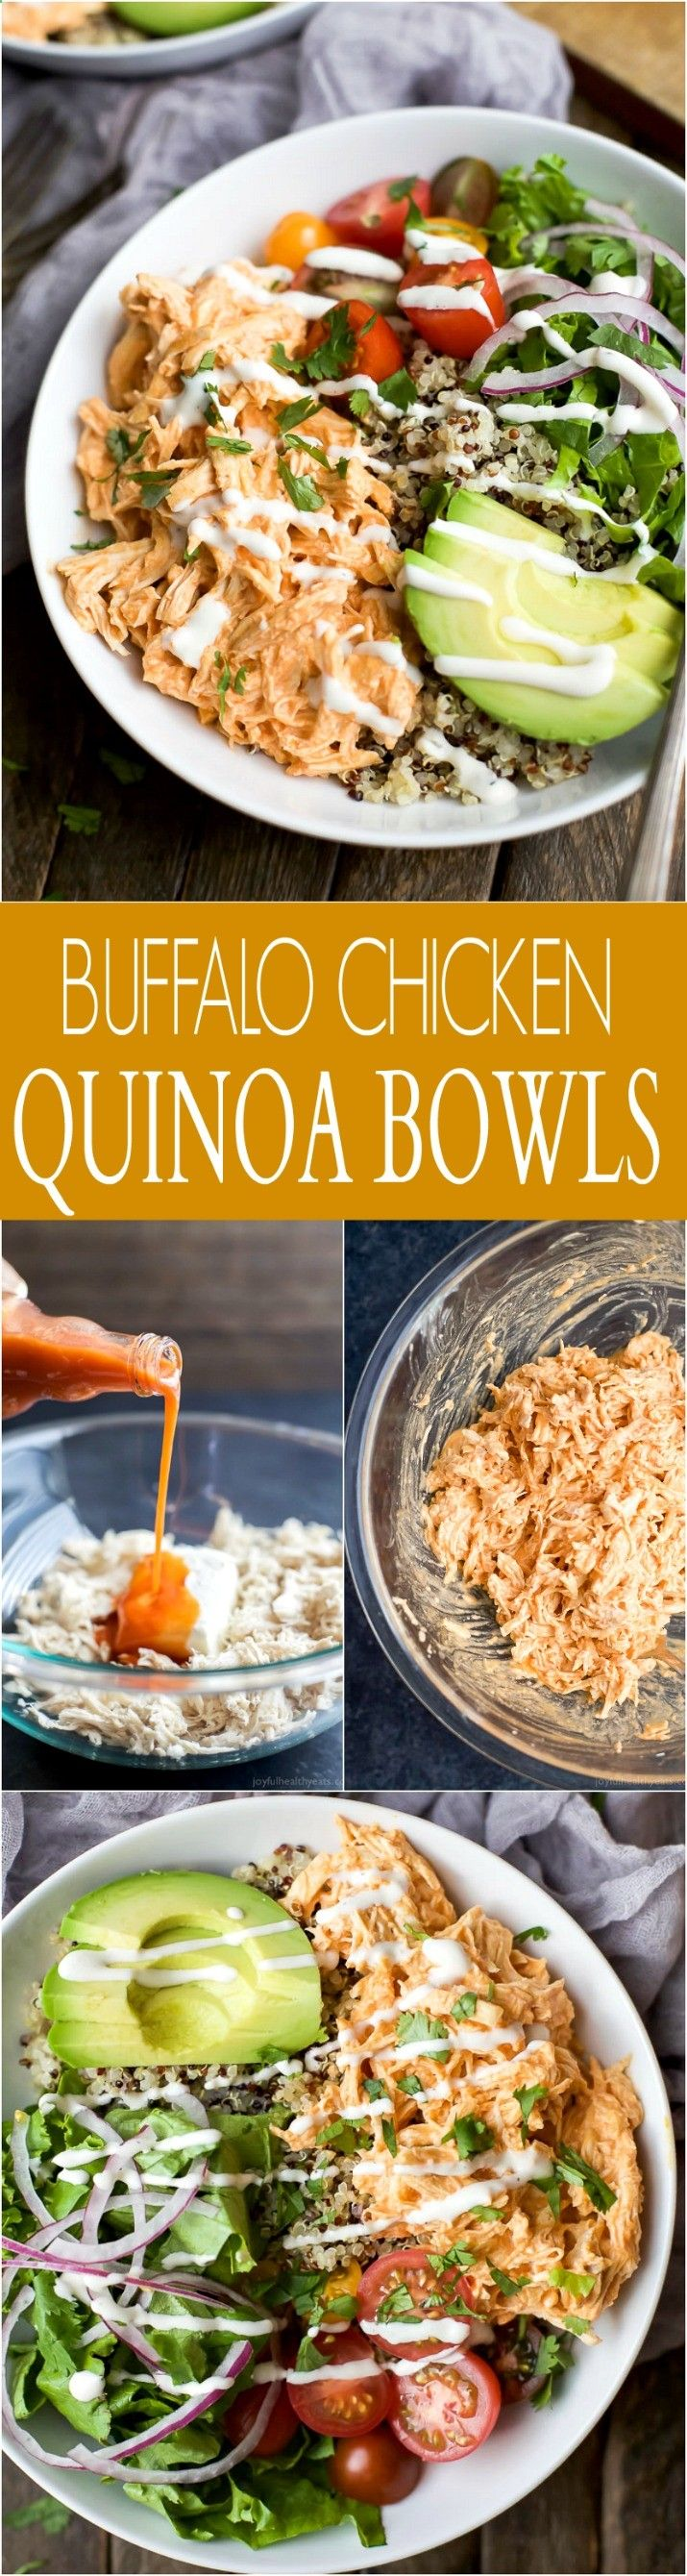 Buffalo Chicken Quinoa Bowls topped with avocado, tomato, shredded buffalo chicken, drizzled with ranch and served on a bed of quinoa. Football food just got a healthy facelift!   joyfulhealthyeats... #glutenfree